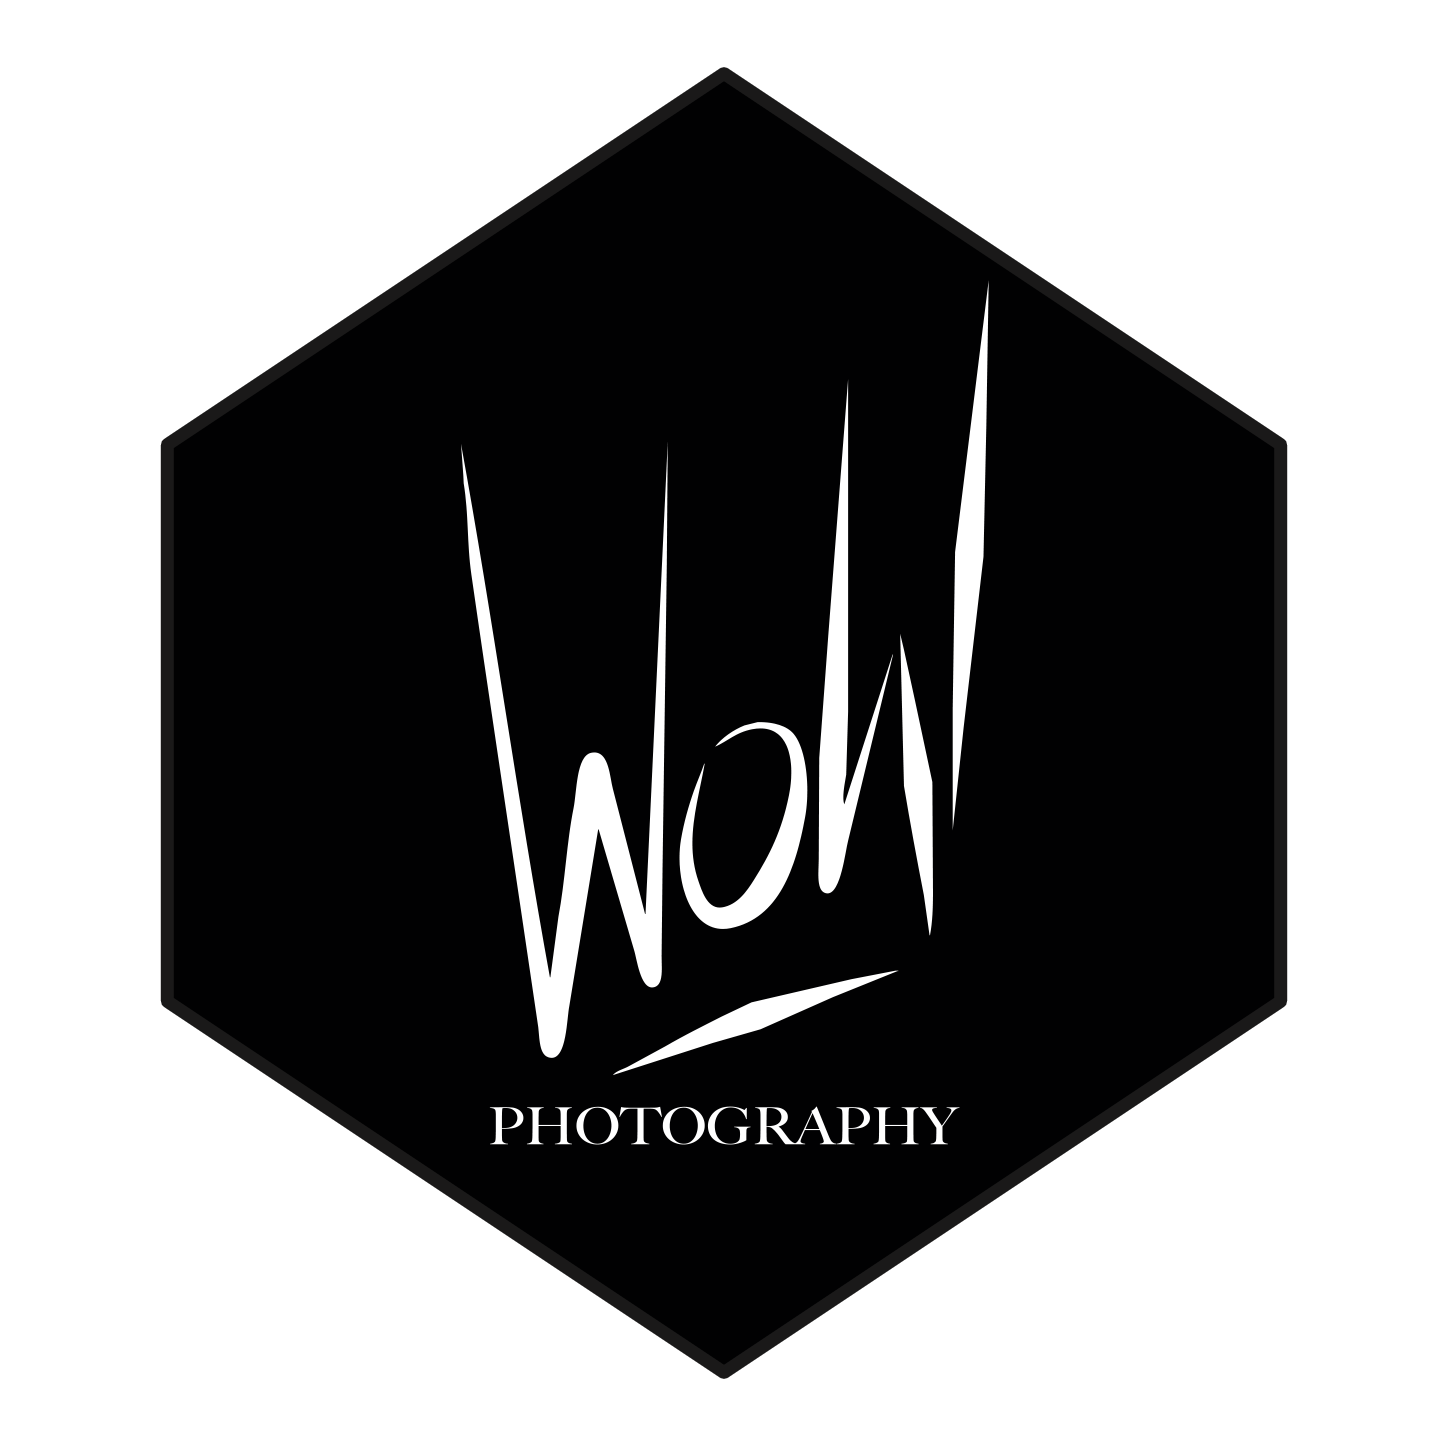 Wohl photography